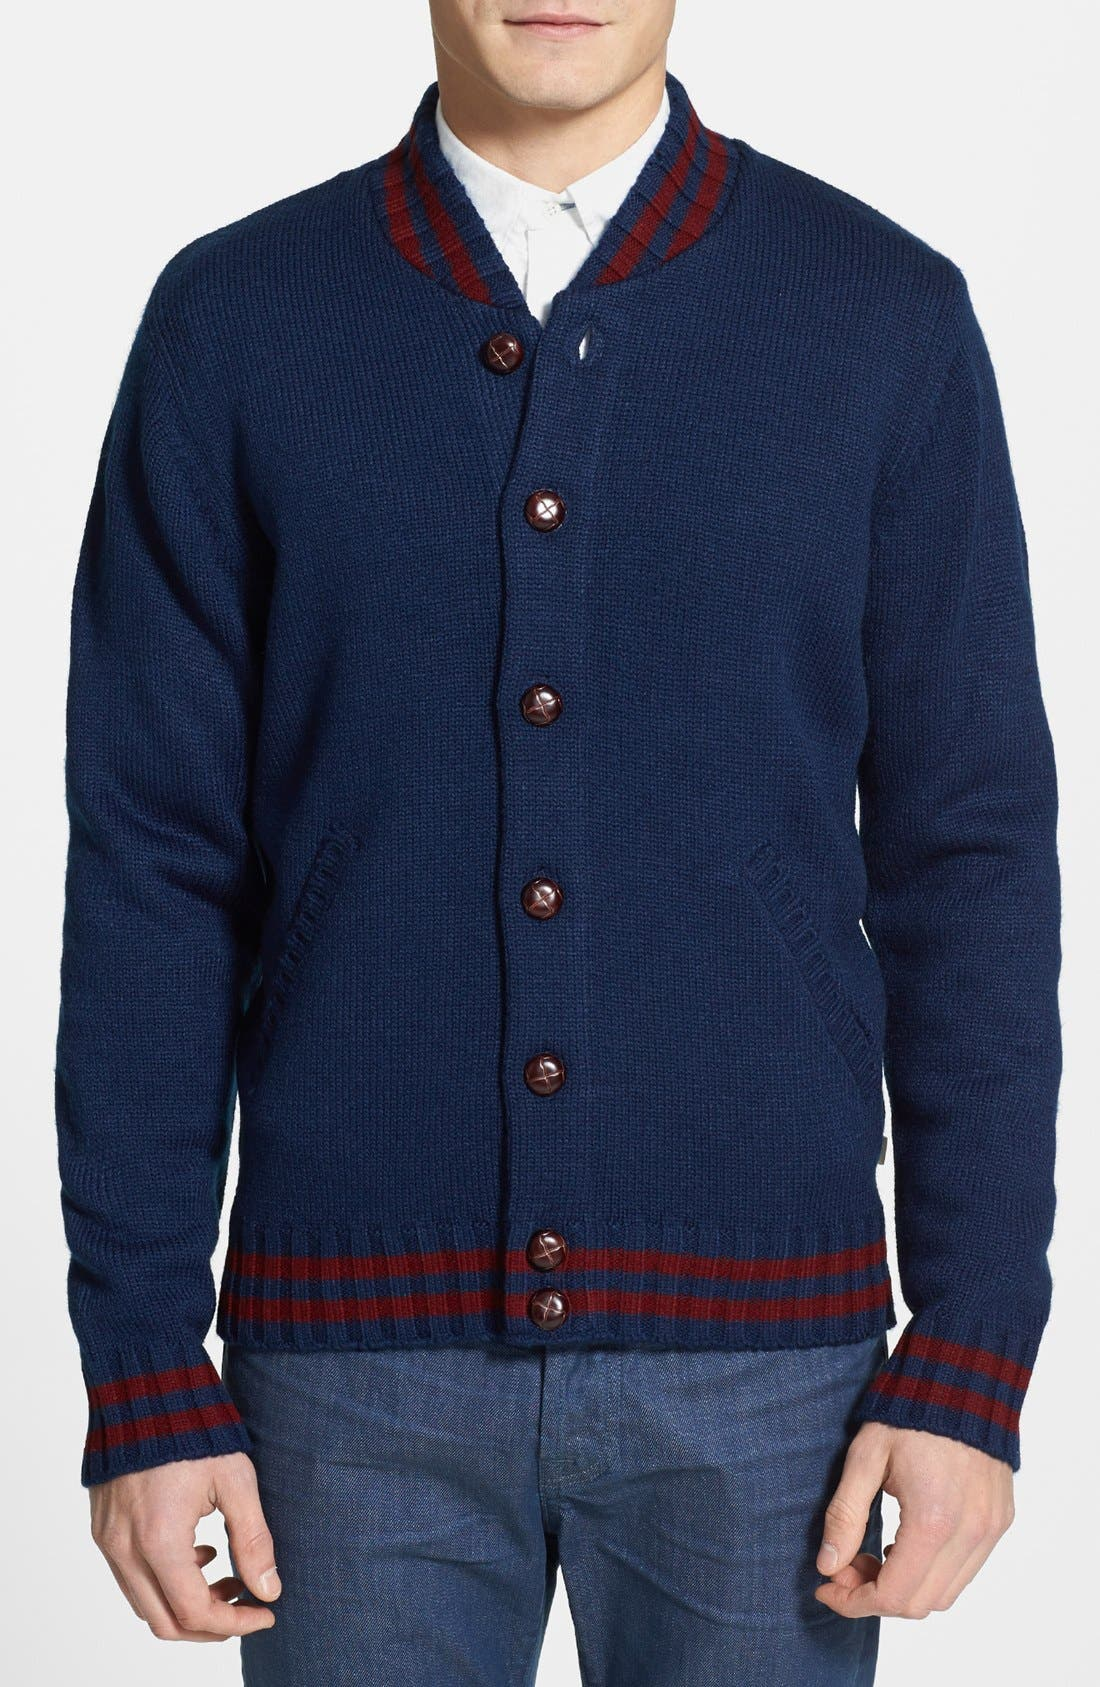 Alternate Image 1 Selected - Obey 'Campus' Cardigan